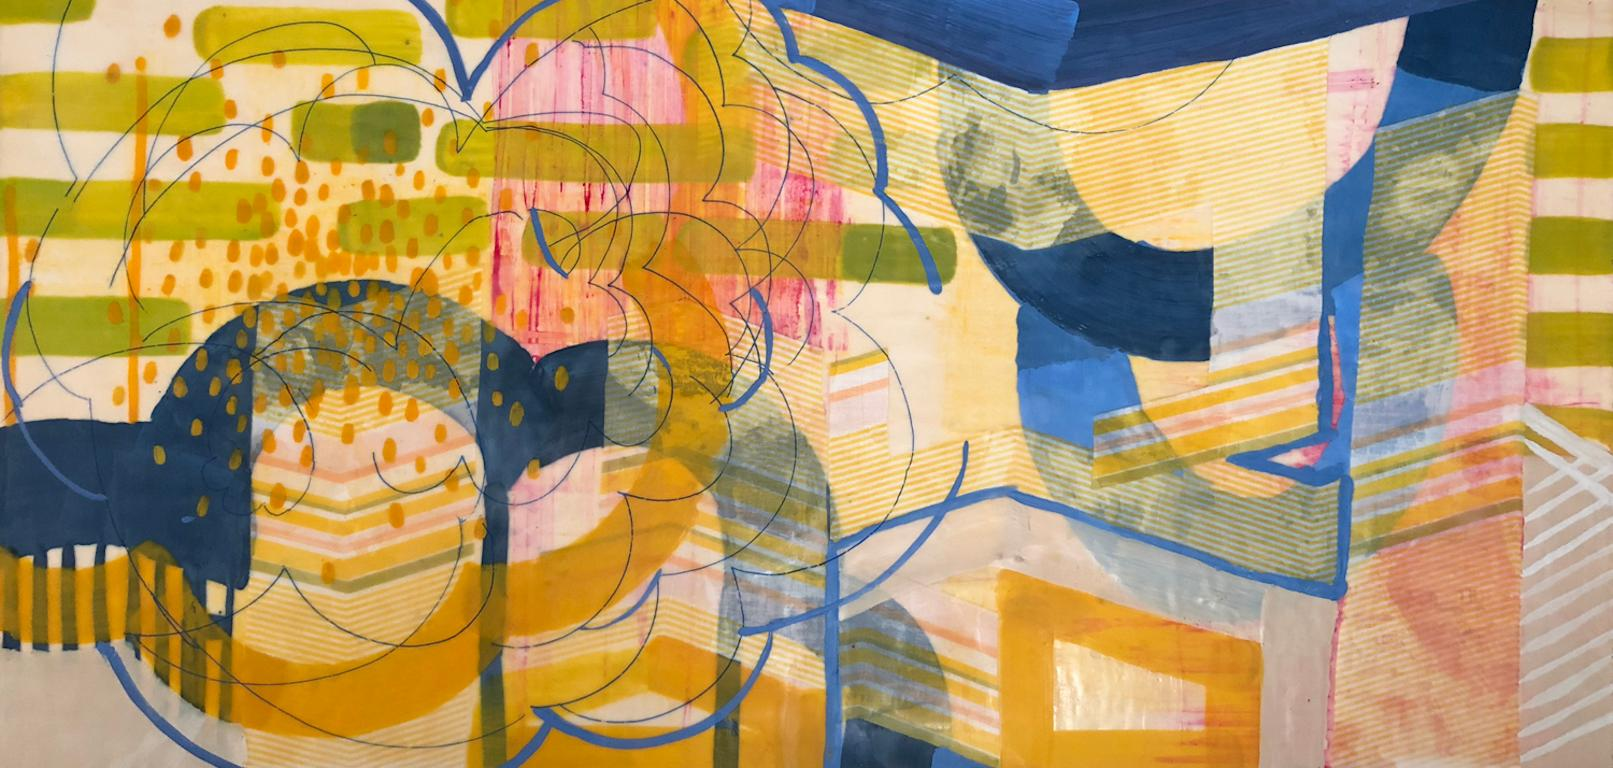 Reverberate I, yellow and green abstract encaustic painting on panel